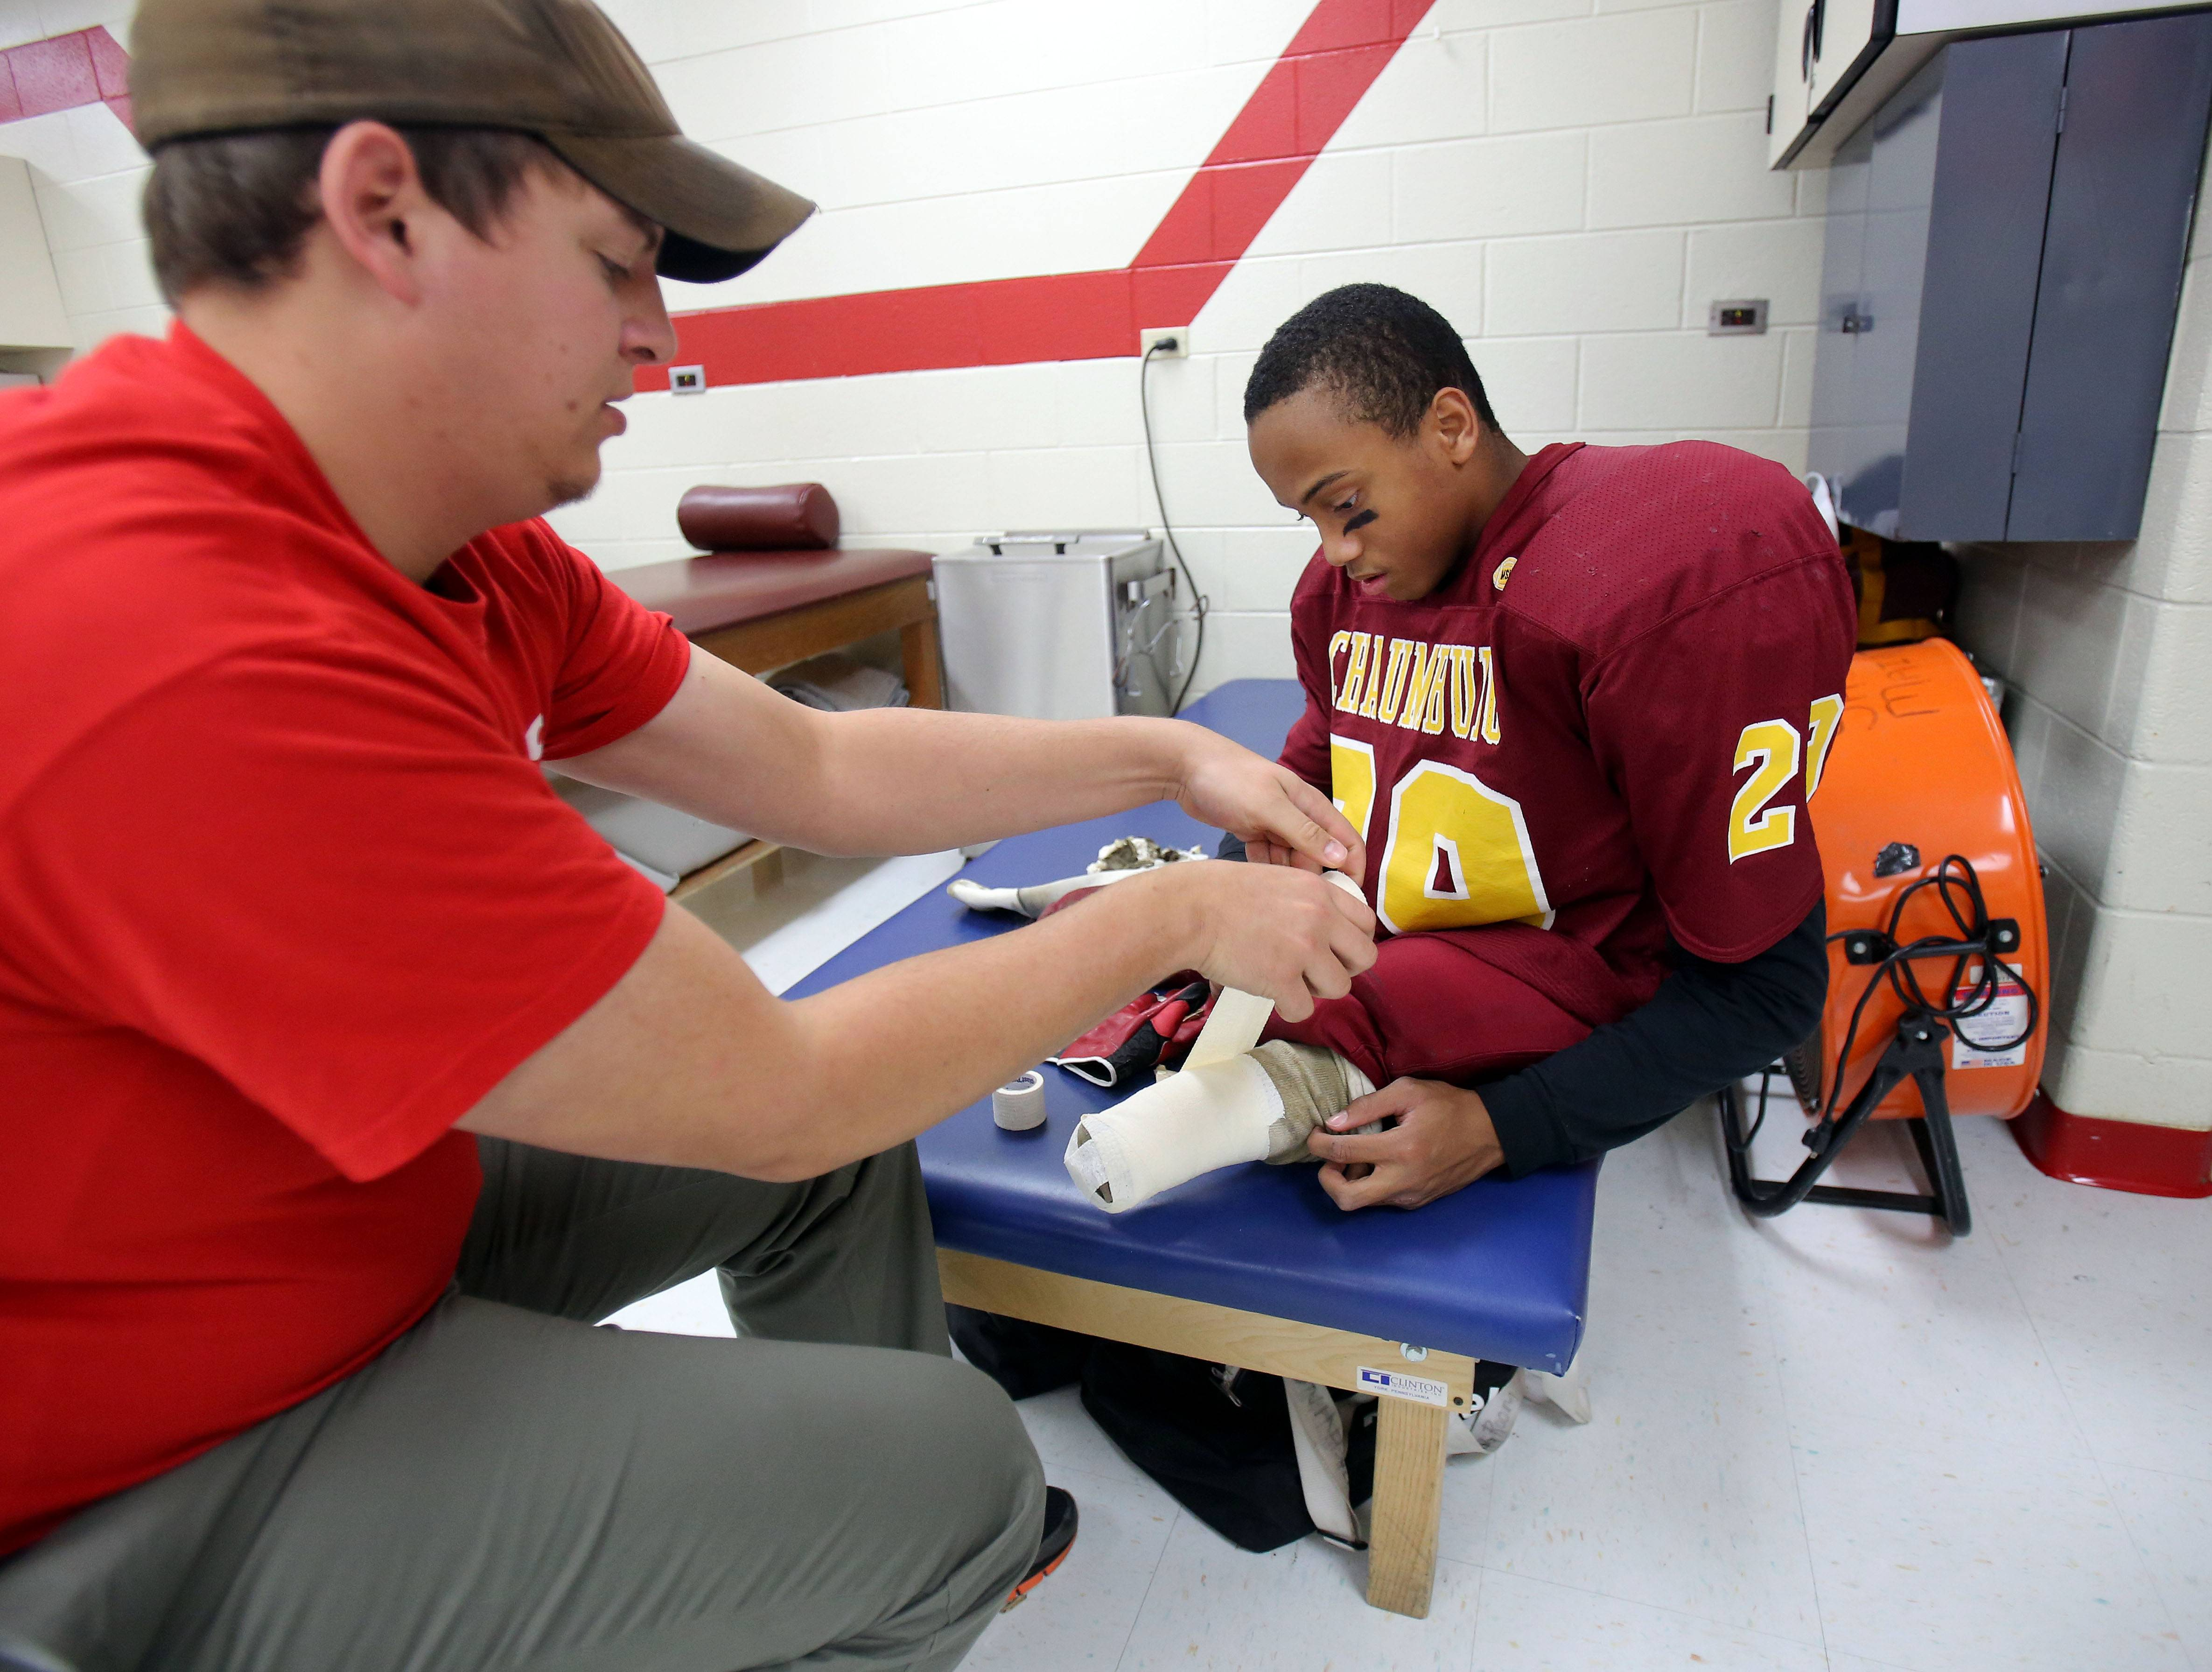 Schaumburg athletic trainer Josh Goray, left, tapes up Sabik Corhan's legs prior to their final game of the season. Corhan is not allowed to play with his prosthetic legs for safety reasons.